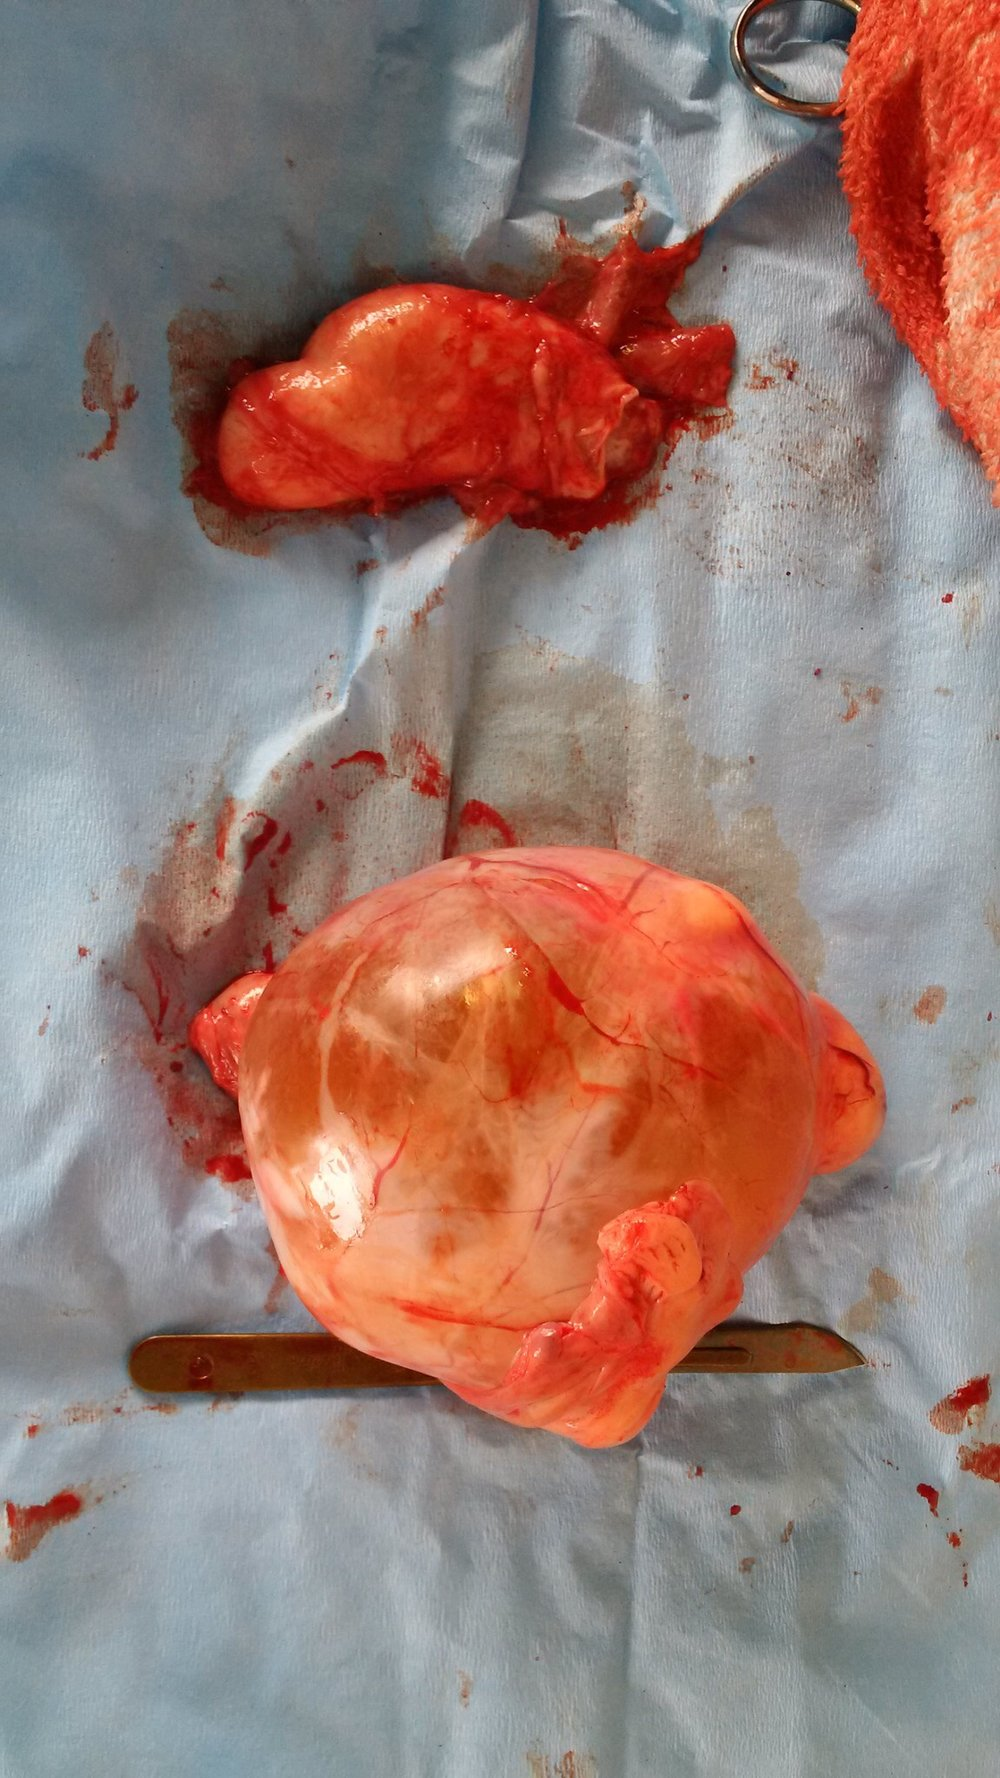 Jimmy's testicles - one tiny and one huge - were found to both be abnormal